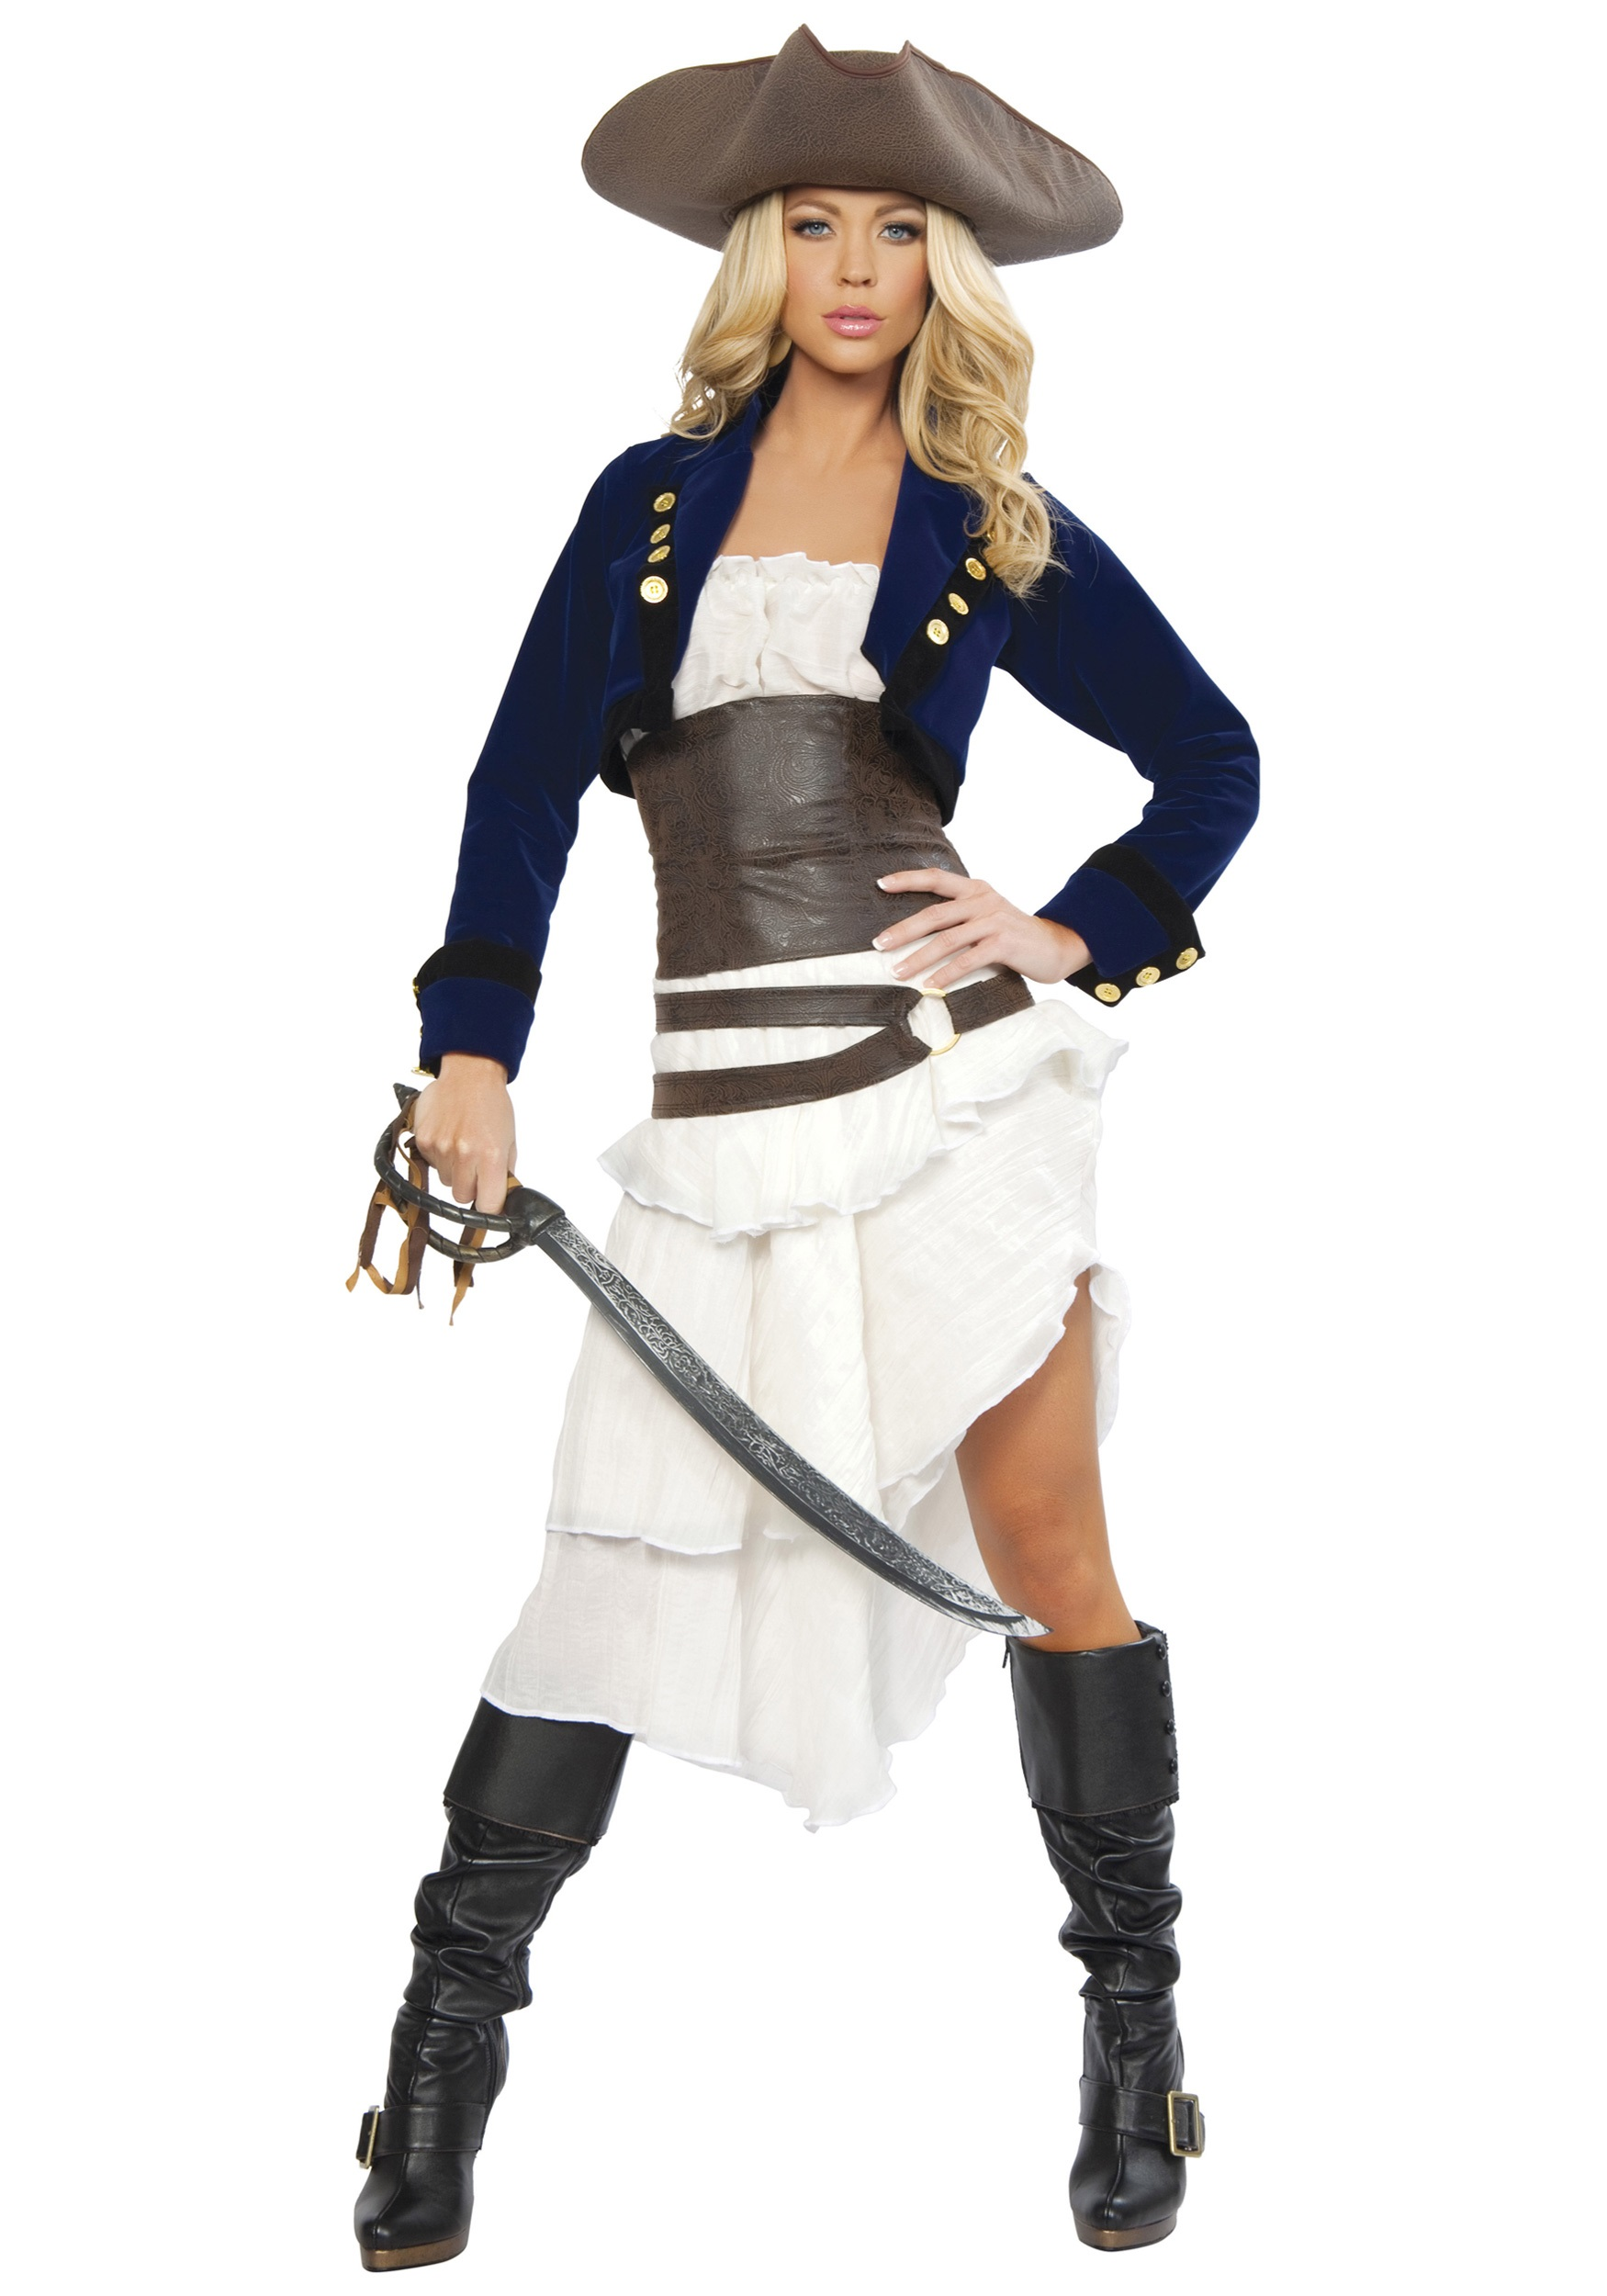 5a6924a58f4 Deluxe Colonial Pirate Costume